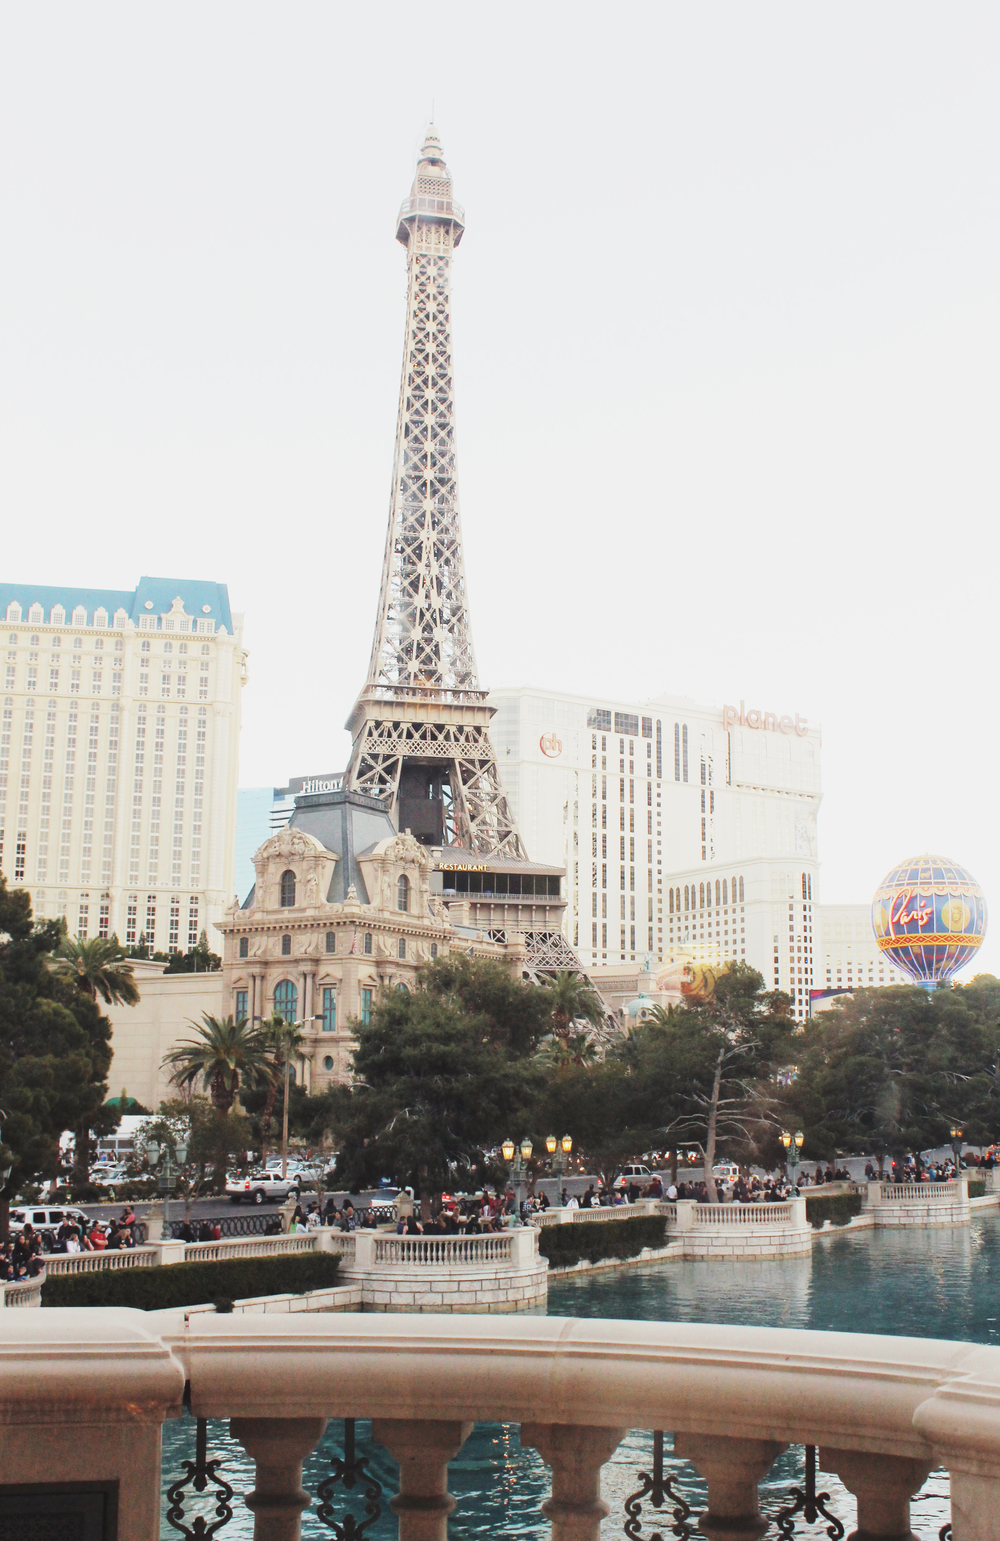 paris casino las vegas.JPG